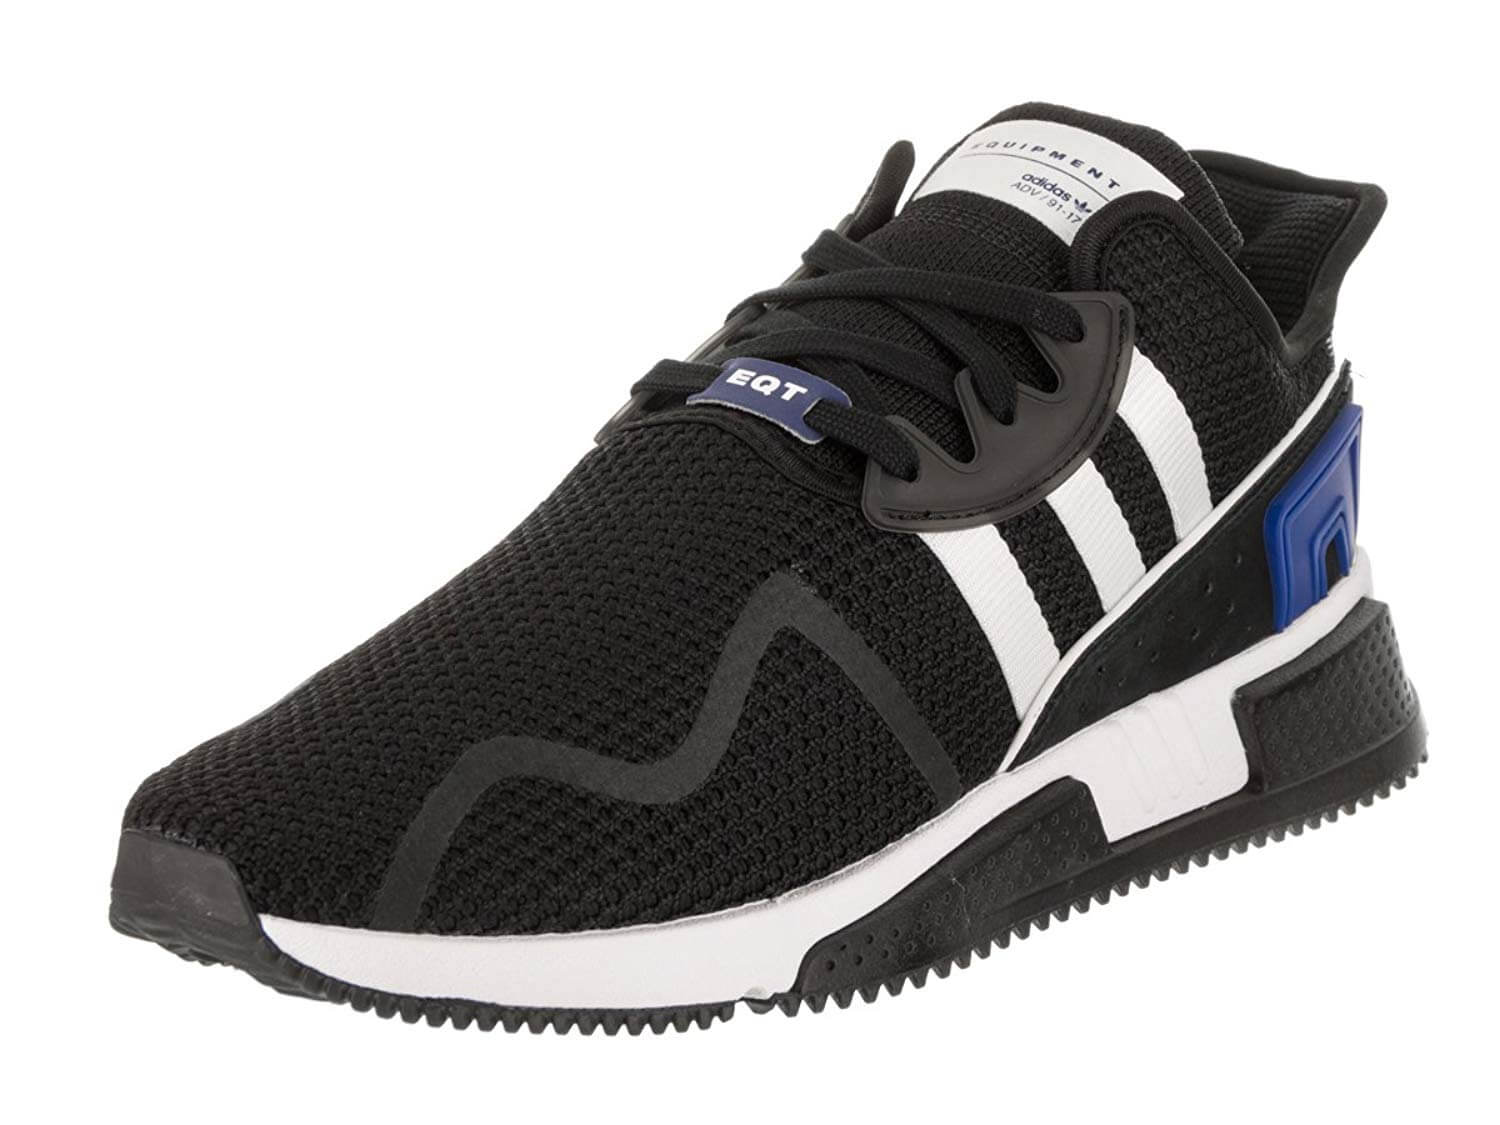 check out 5dbb0 ed5fa Adidas EQT Cushion ADV